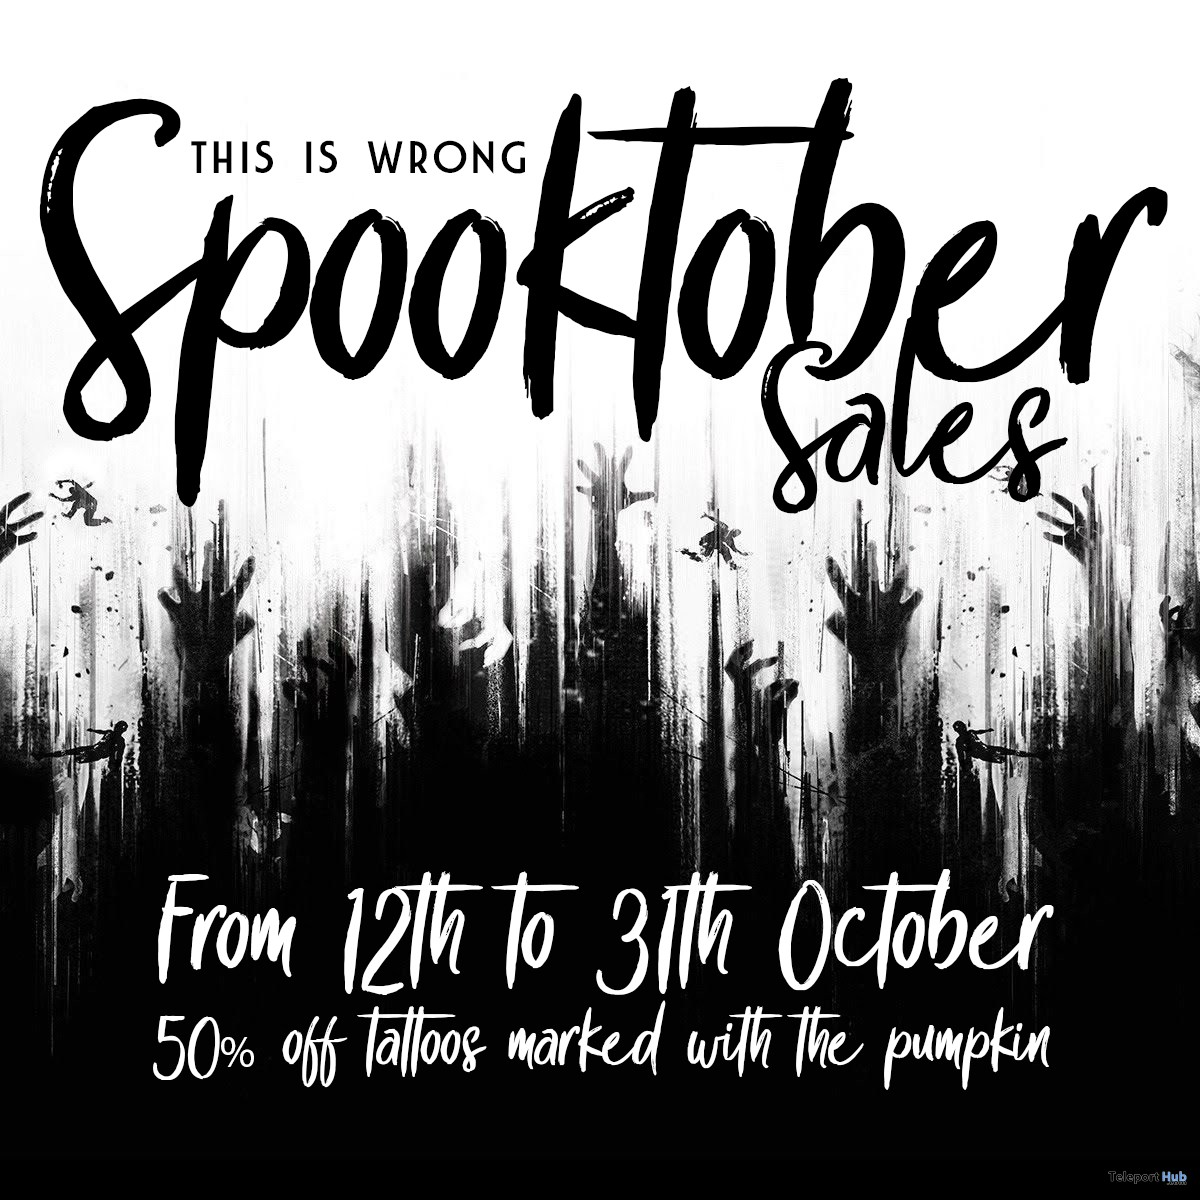 Spooktober Sales Promo 2018 by THIS IS WRONG - Teleport Hub - teleporthub.com